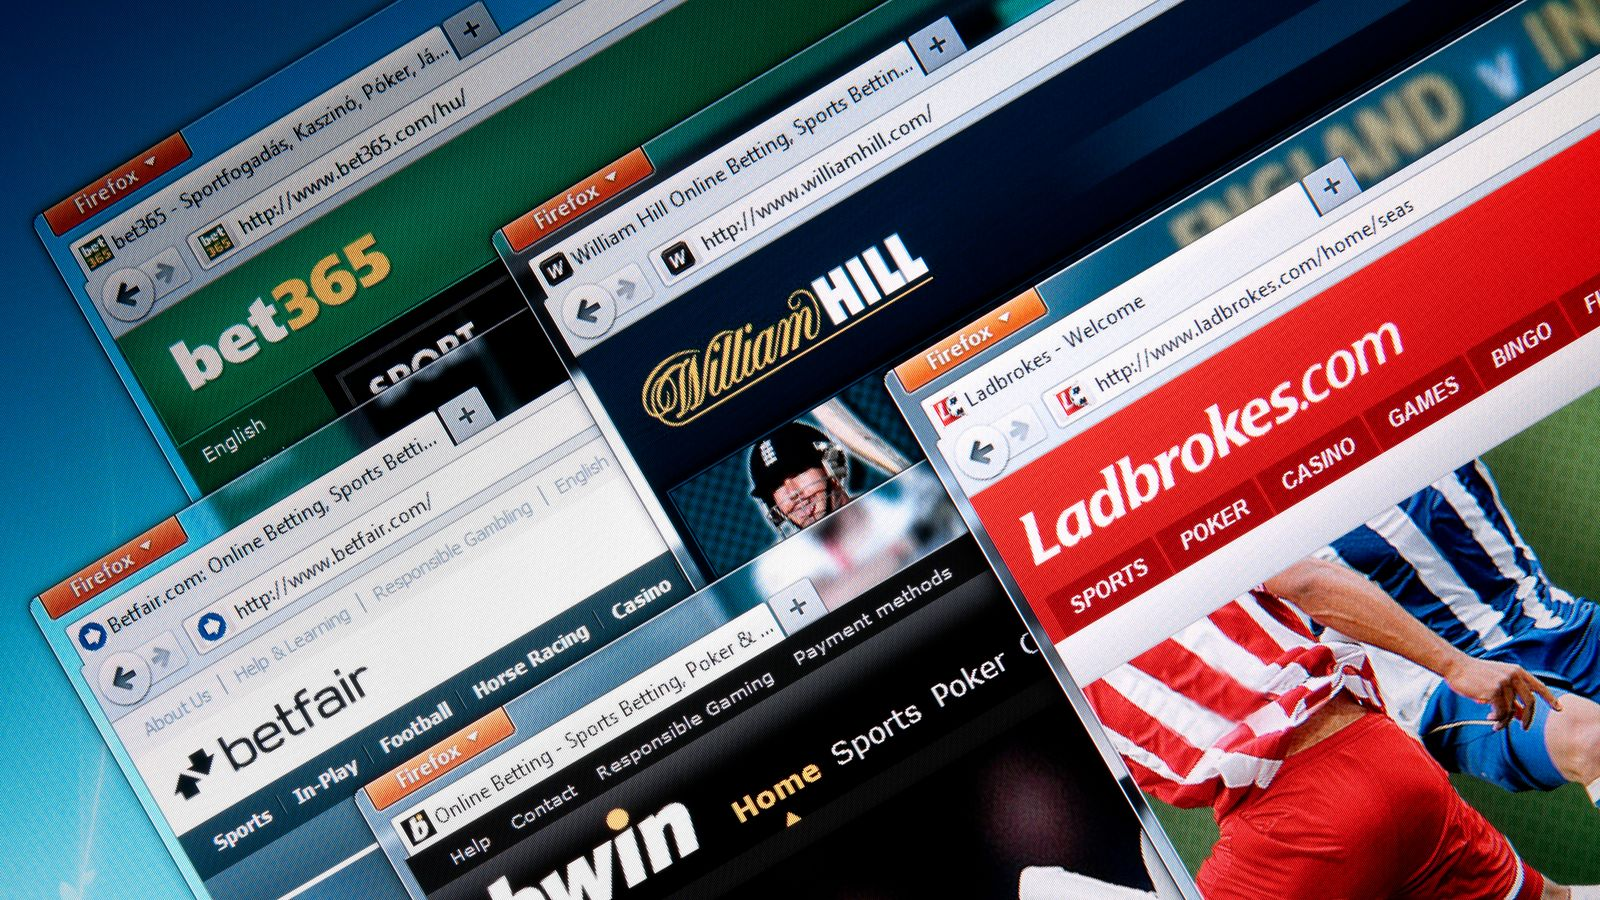 Online bookies rapped for 'unfair' promotions that trap players' cash |  Business News | Sky News